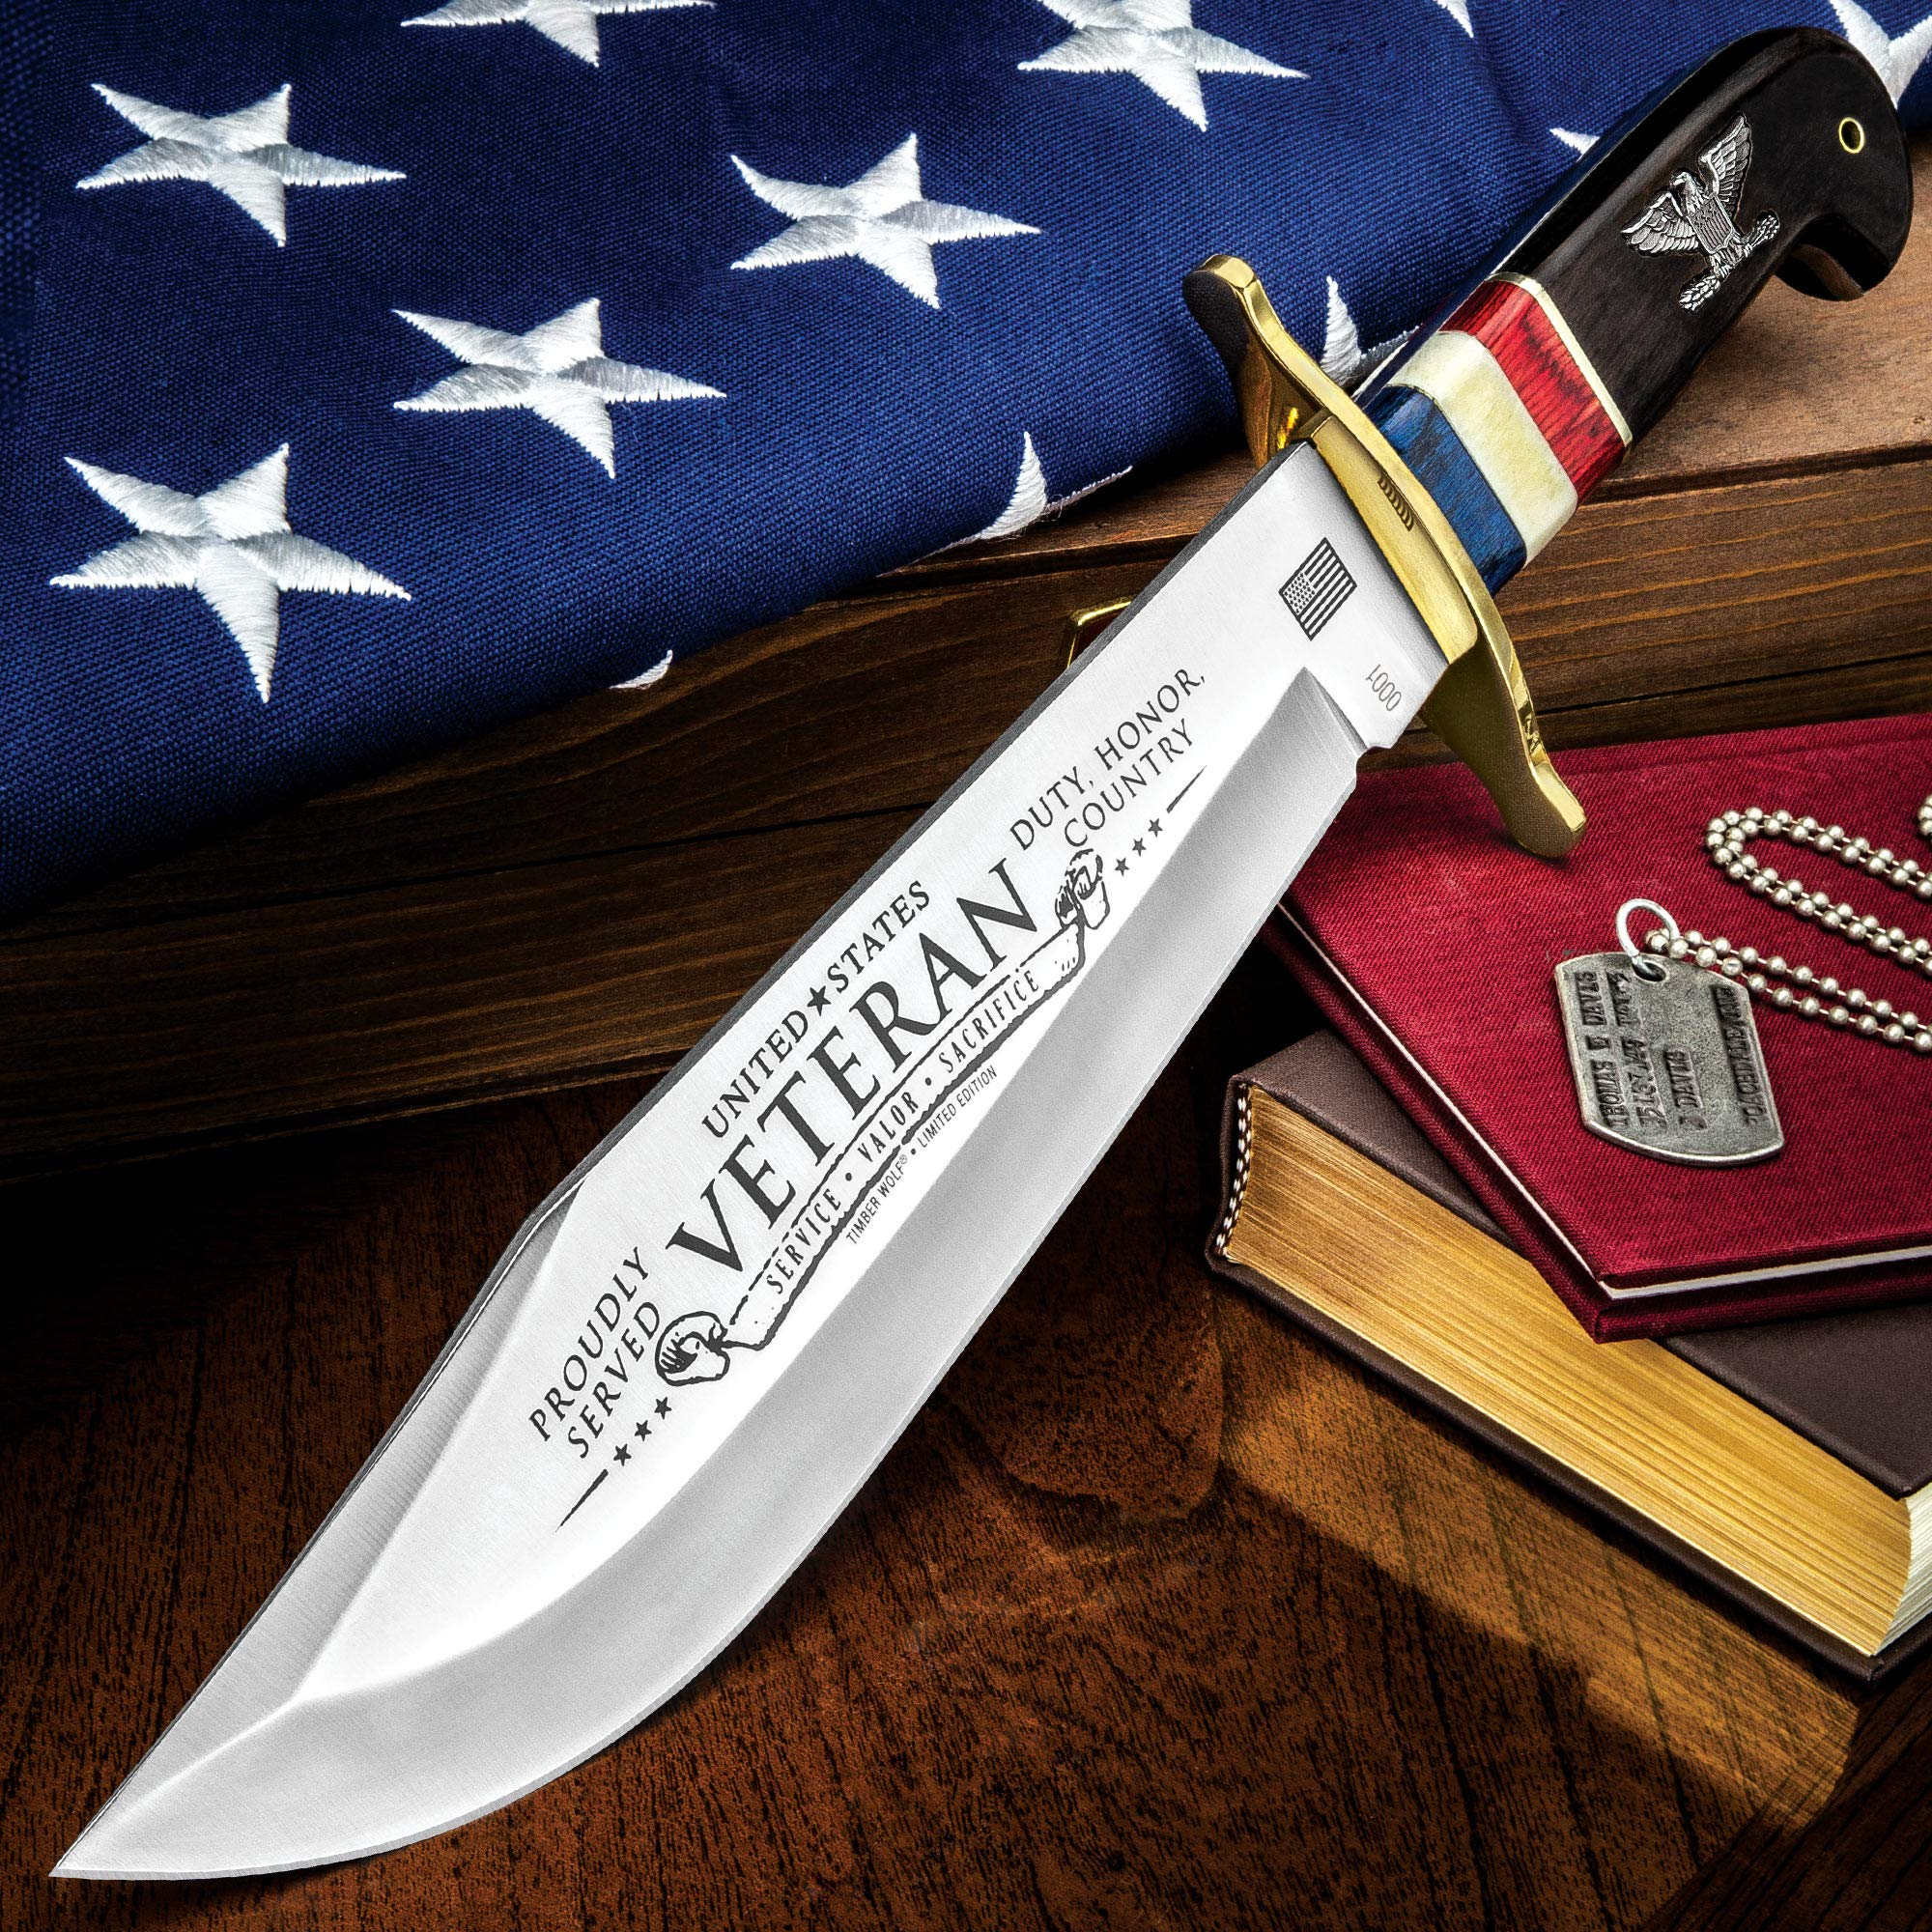 Timber Wolf 2018 American Veteran Bowie Knife - Stainless Steel Blade, Bone and Wooden Handle, Brass Guard and Pins - Length 16''